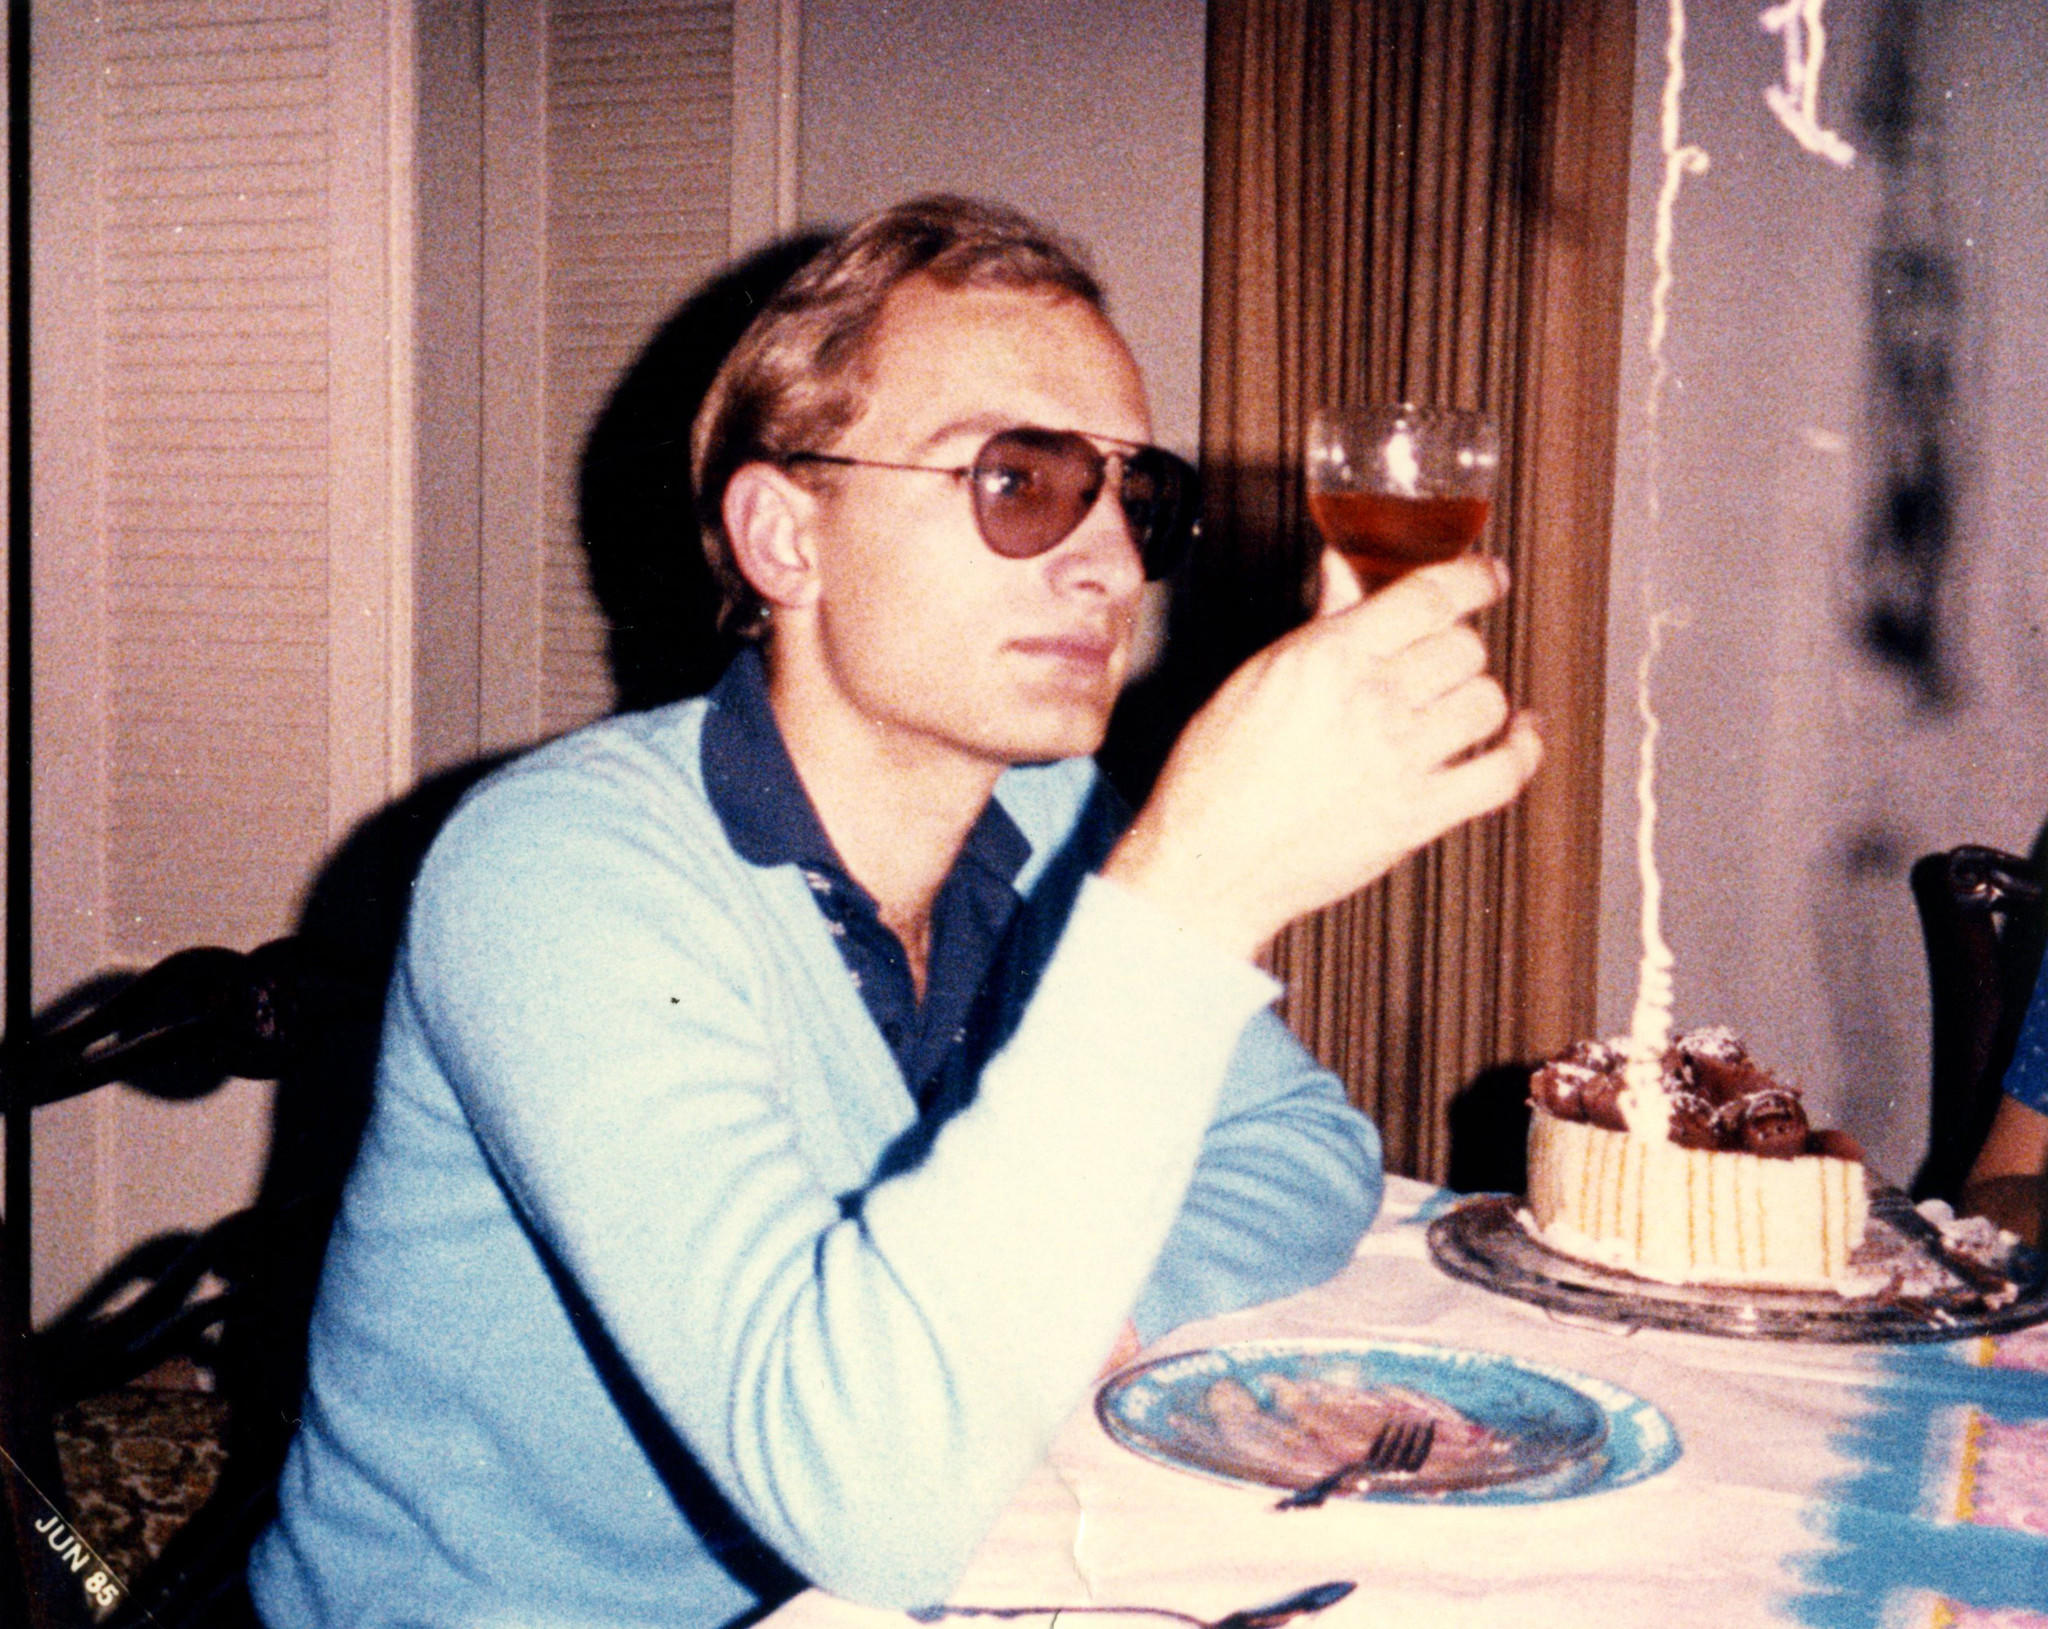 Christian Gerhartsreiter, whose several assumed identities included Clark Rockefeller, at a birthday party in 1984.